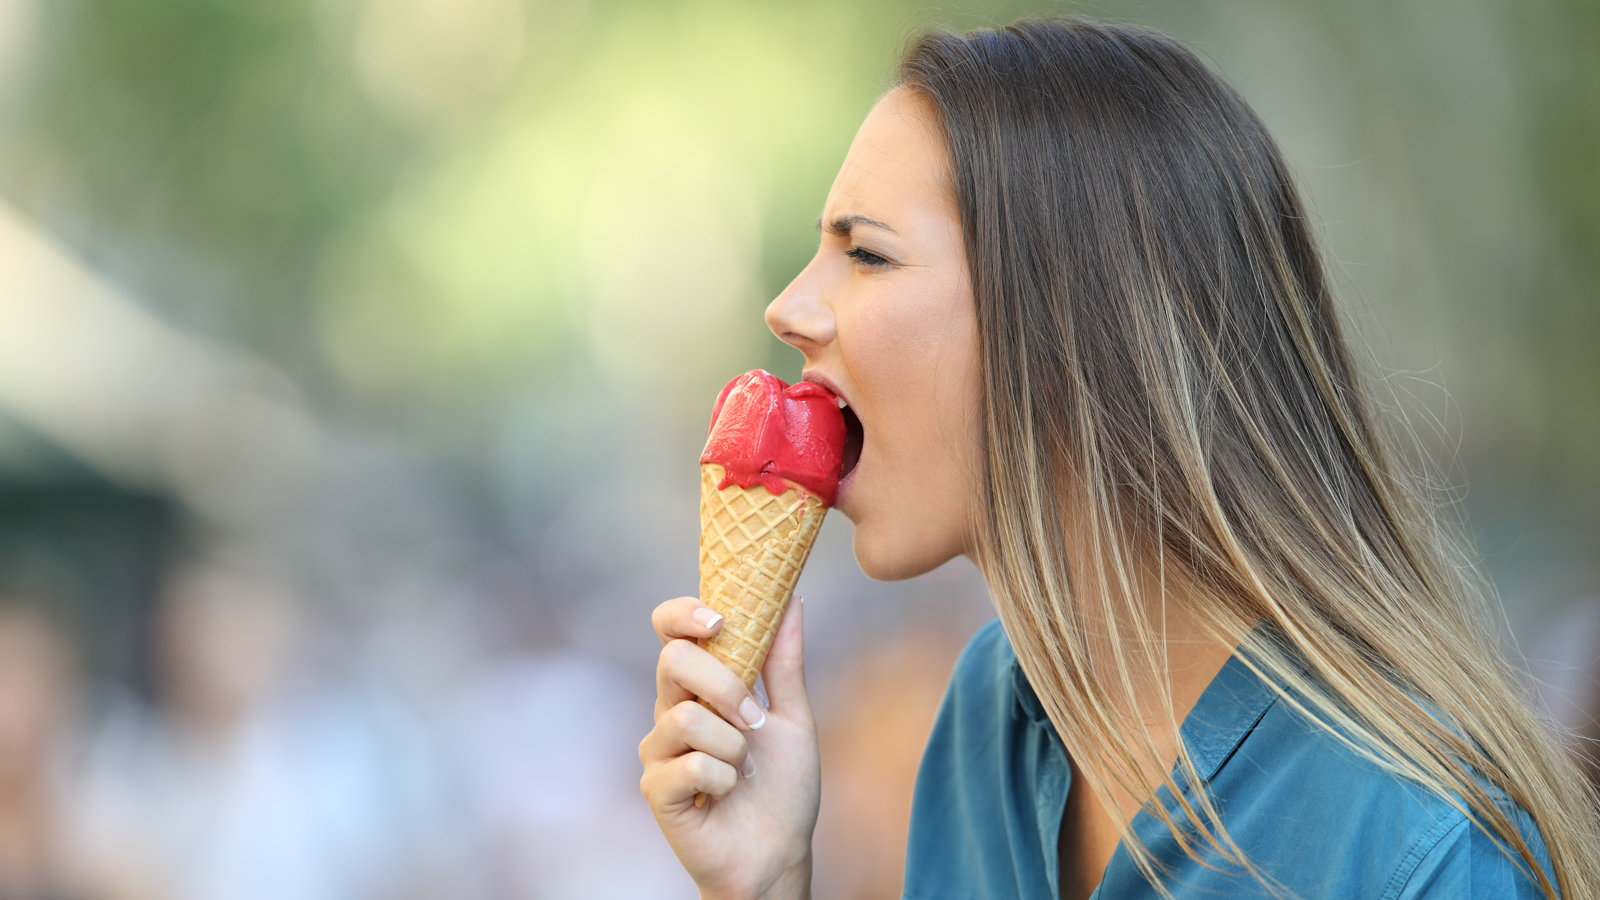 woman eating icecream cone